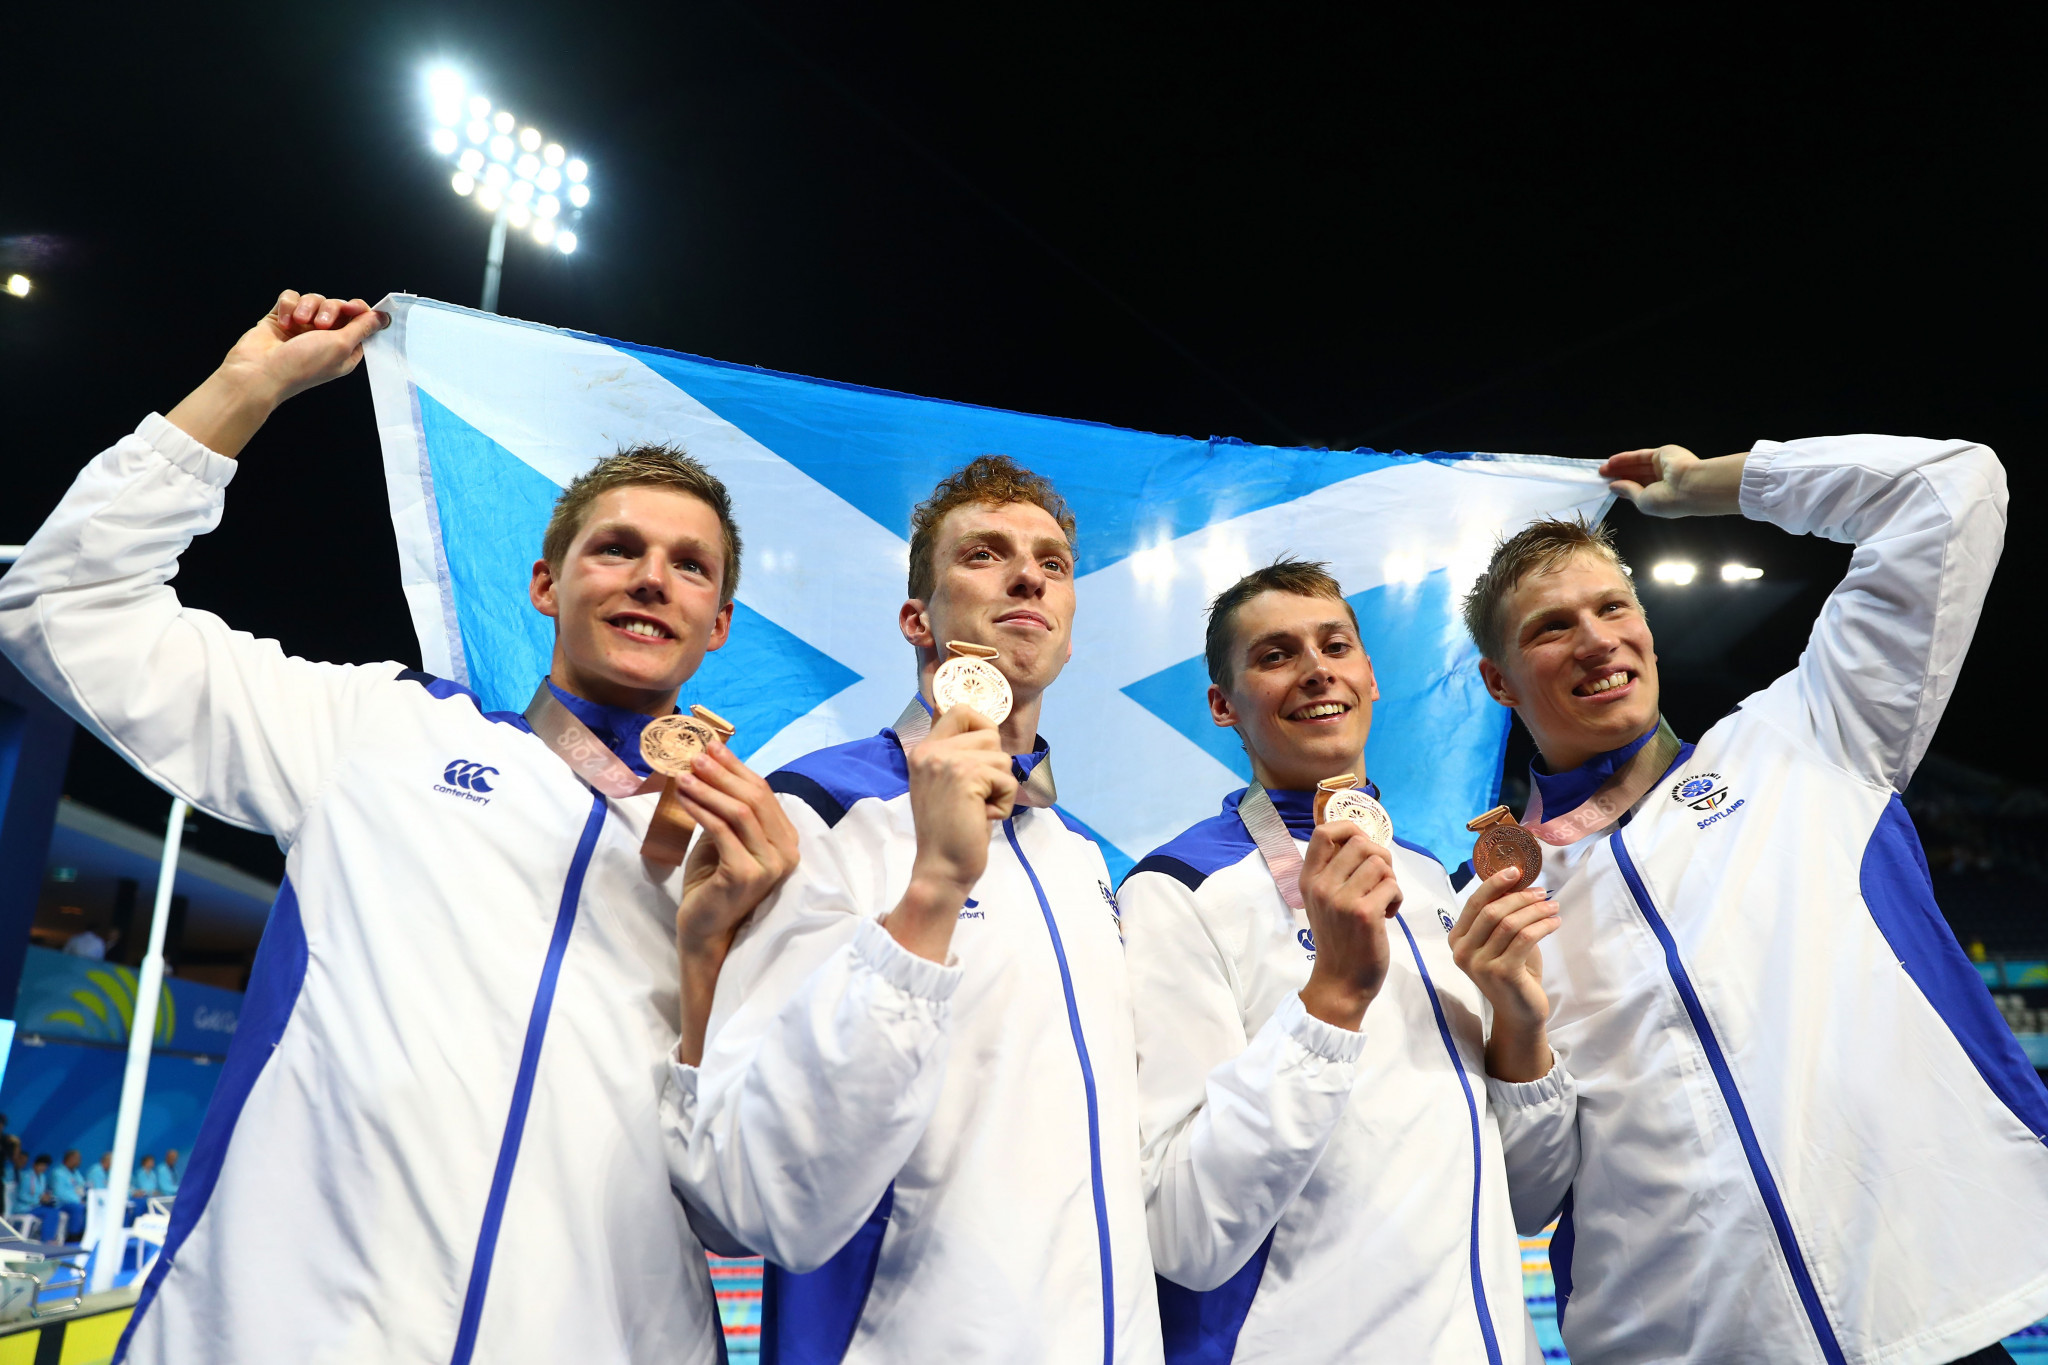 Dan Wallace, second left, won two bronze medals at Gold Coast 2018 ©Getty Images